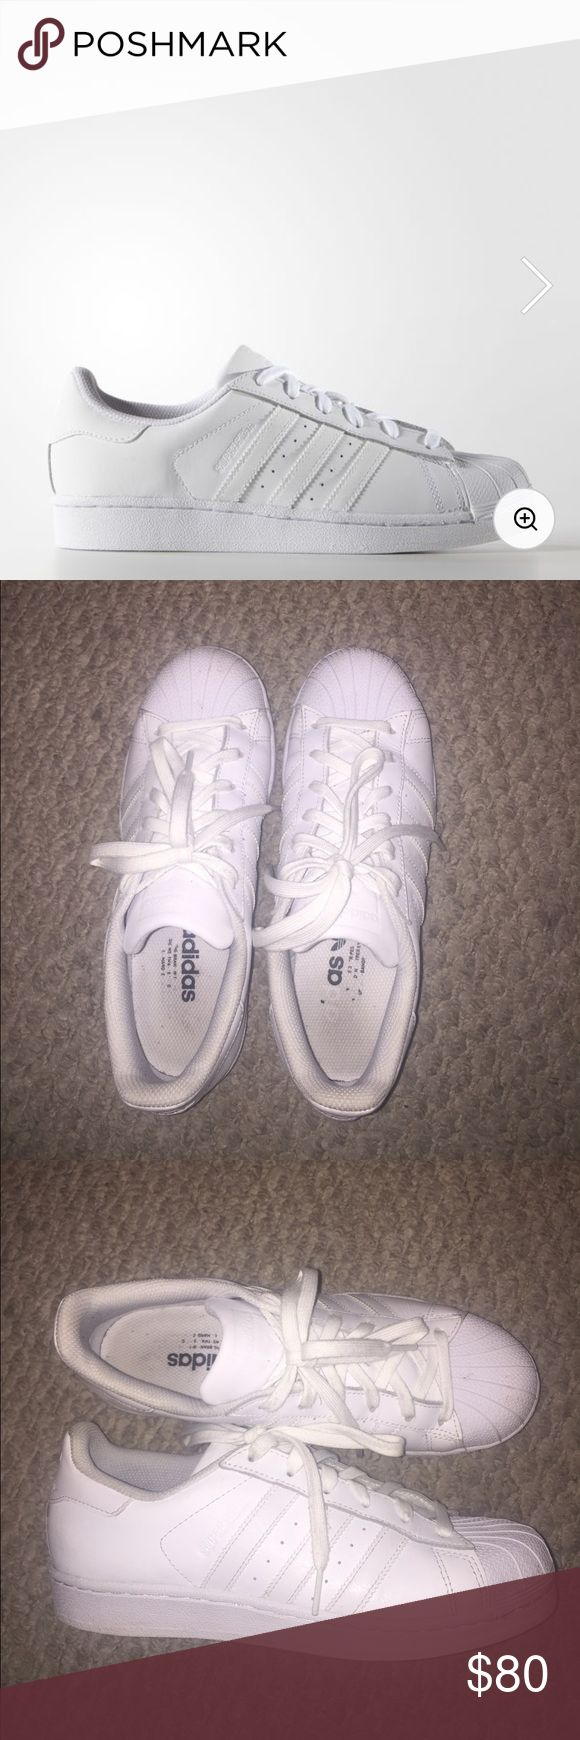 White Adidas Superstars womens, size 8, condition is 7.5/10 worn many times but still in good condition, really wanting to sell at this price so i could buy a another pair because i need a smaller size. reasonable offers will be negotiatied! the soles of the shoe are kind of worn out as shown in the picture. comes with the laces and the box for the shoes!! Adidas Shoes